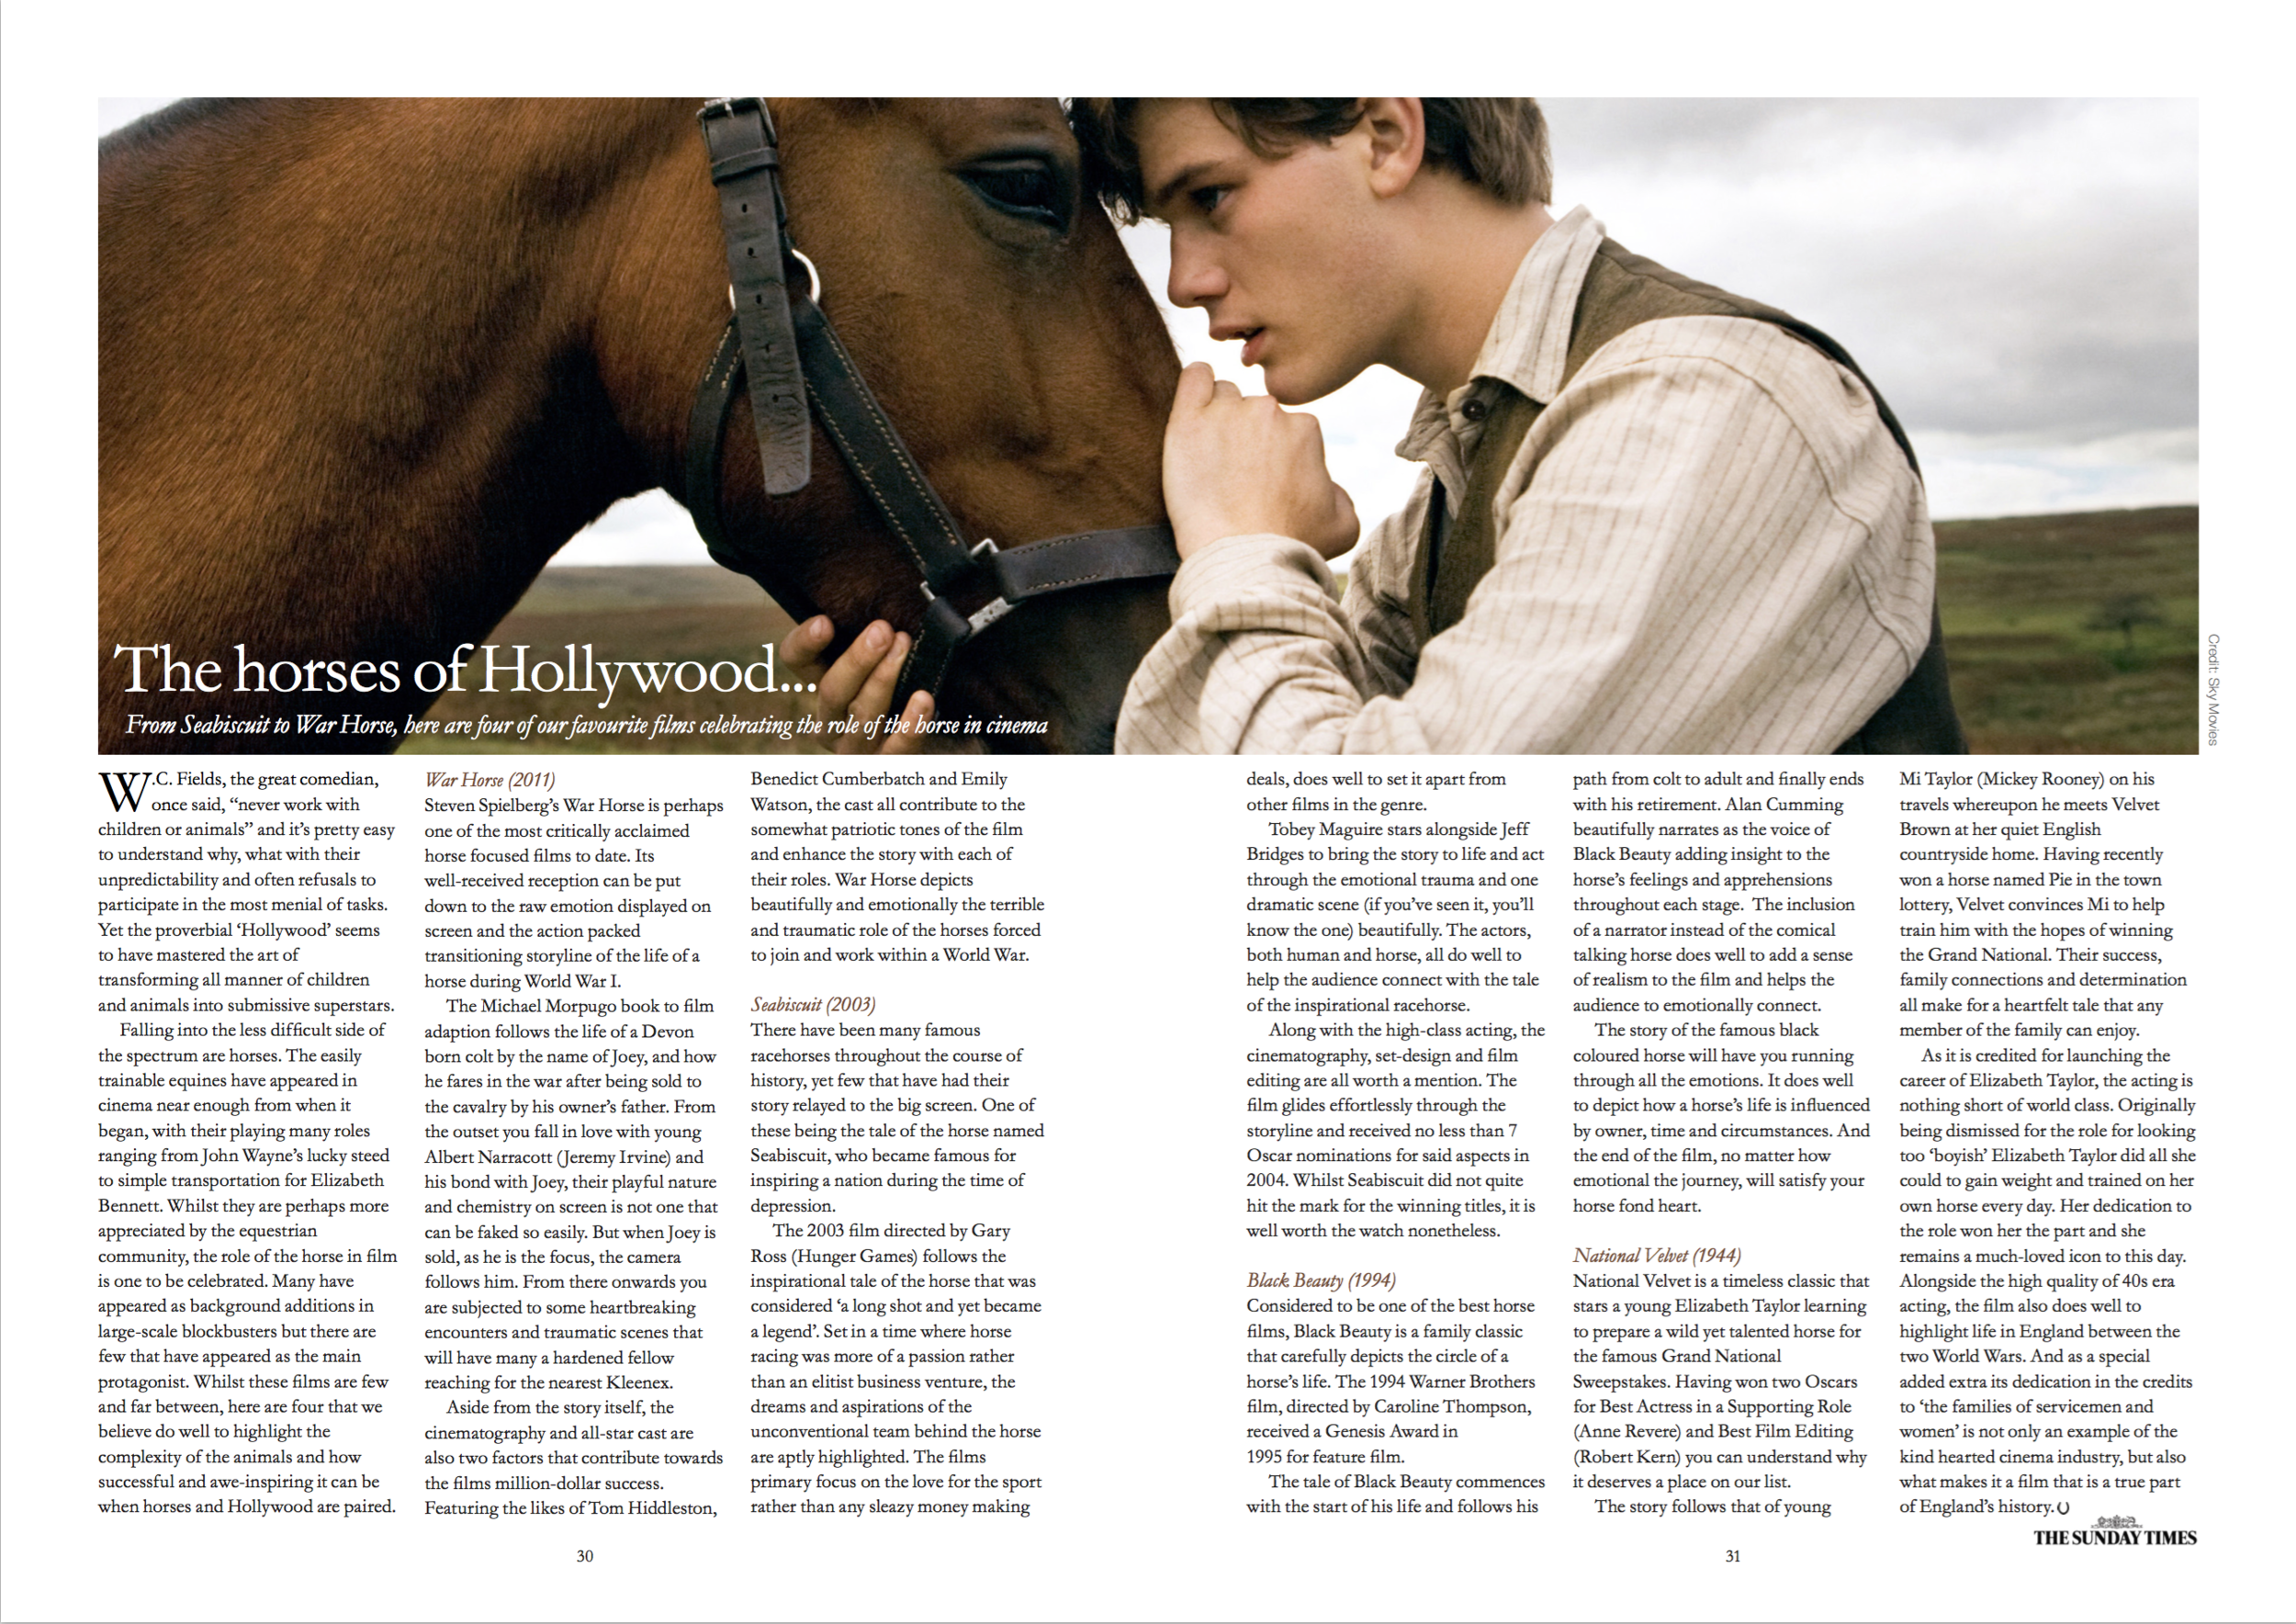 Feature on 'The Horses of Hollywood'